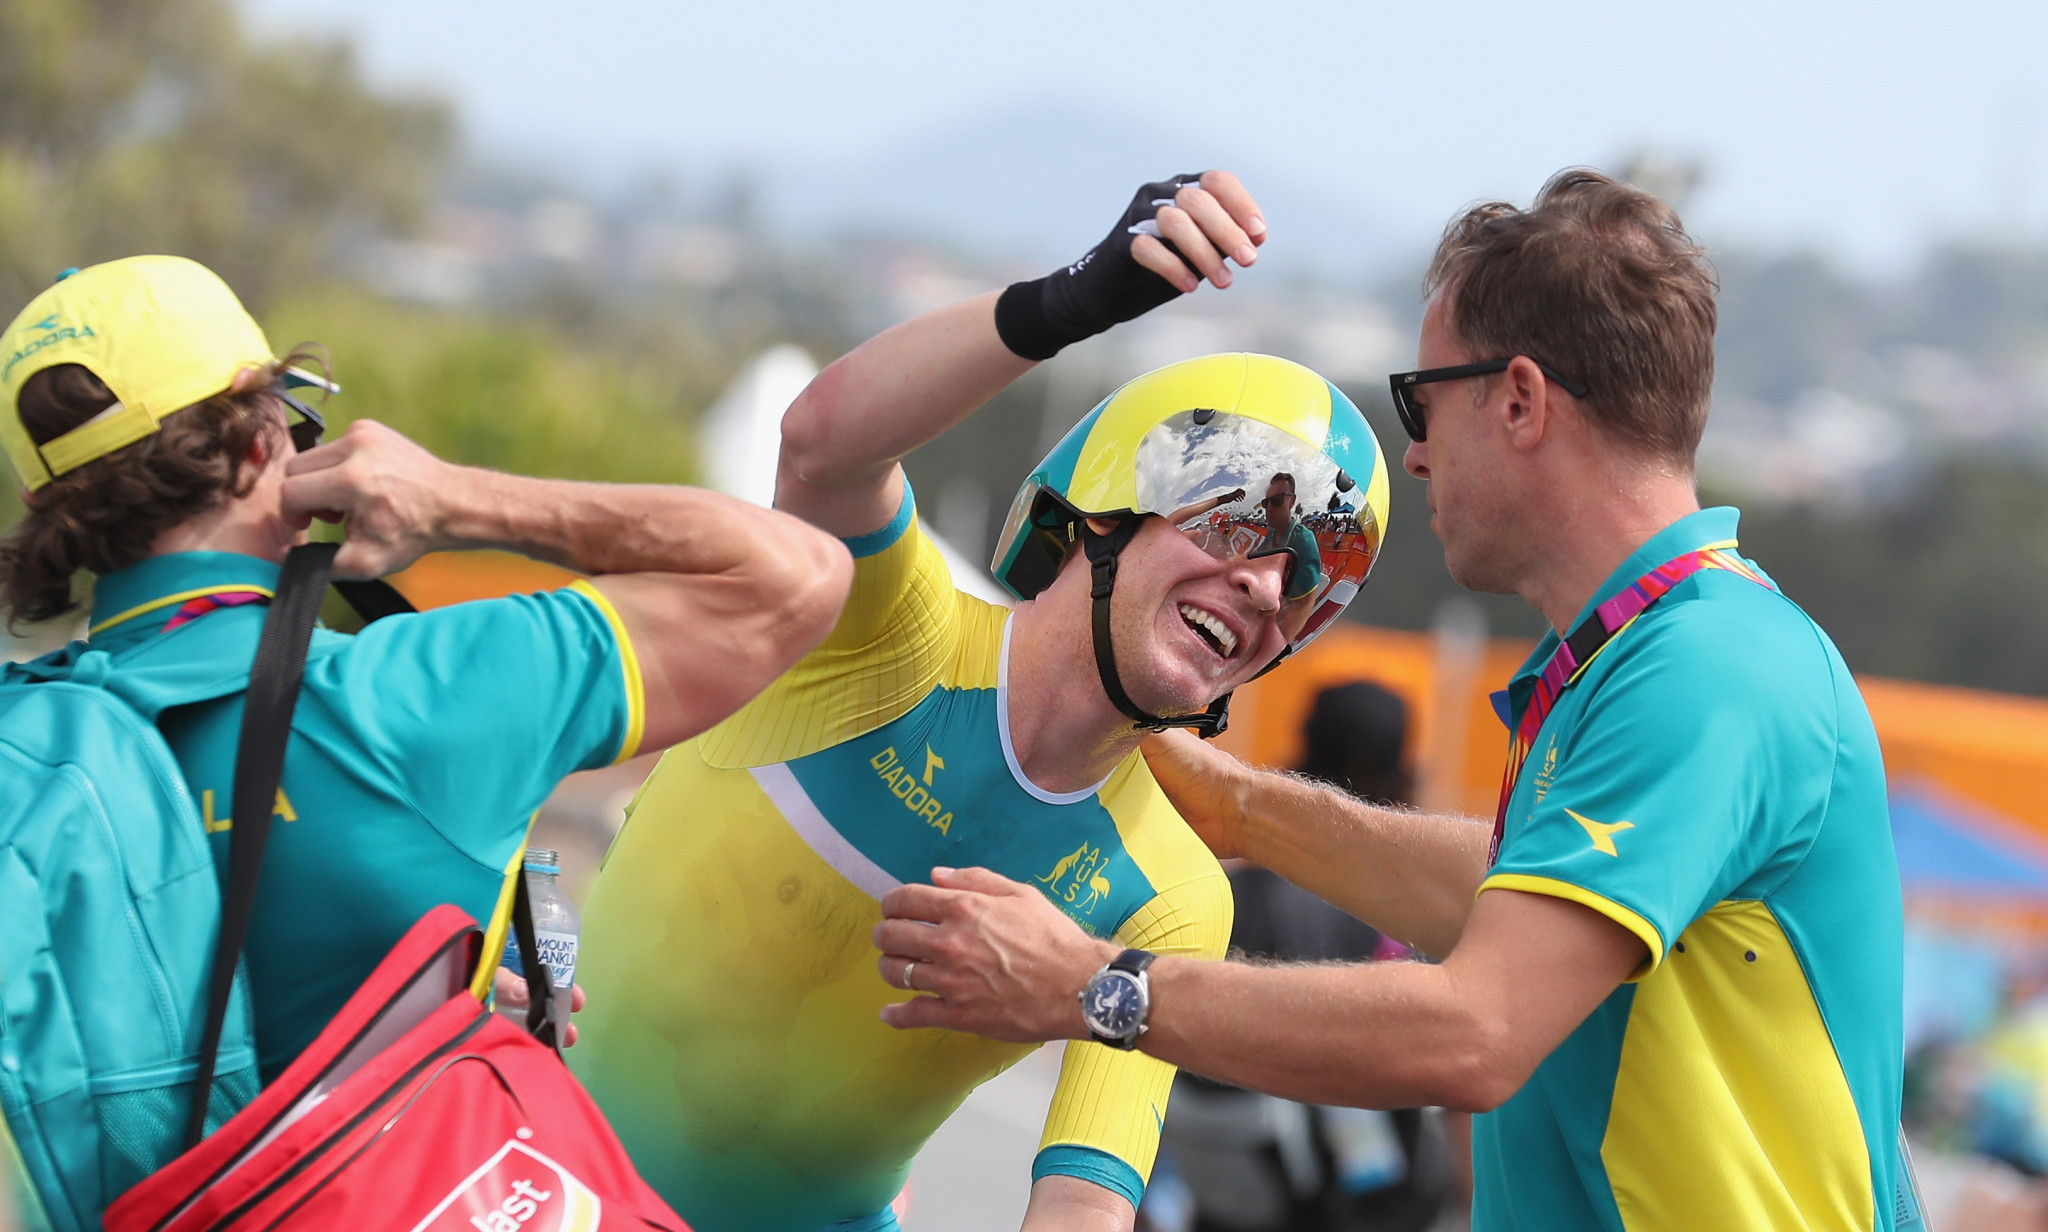 Meyer triumphs in men's individual time trial as Olympic rowing champion secures bronze